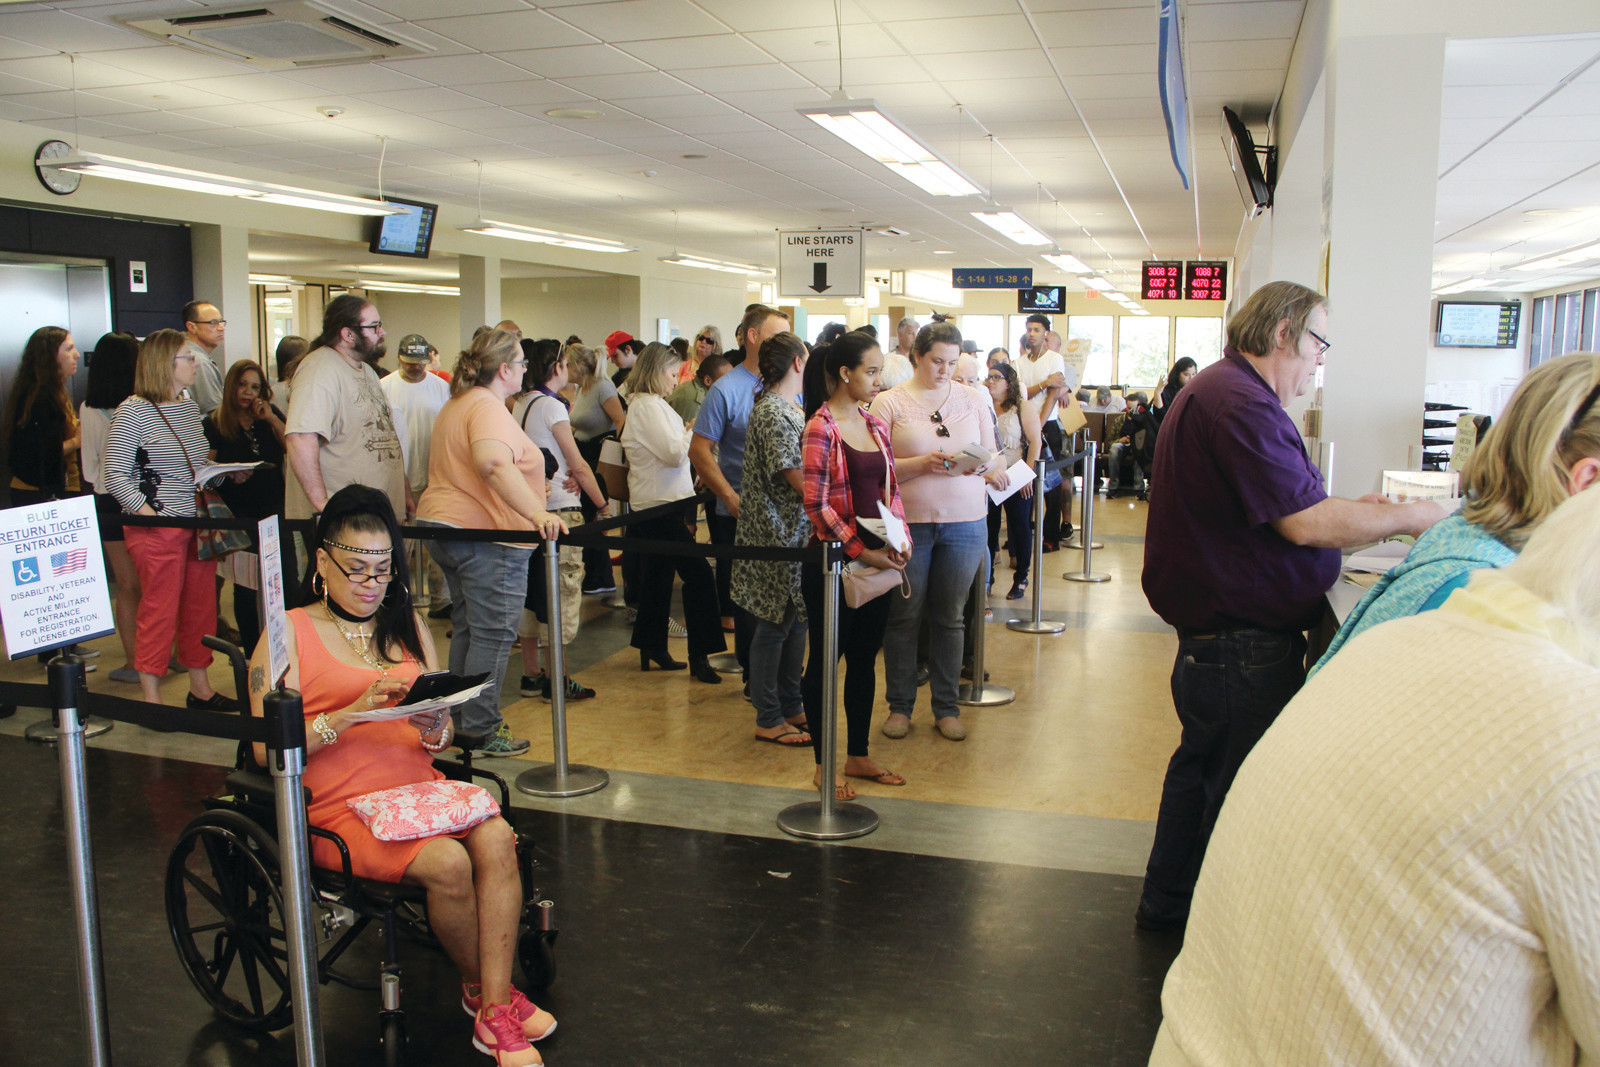 THE DMV EXPERIENCE: The wait at the main branch of the DMV in Cranston was about 90 minutes Friday. The branch completes about 17,000 transactions monthly, which should happen faster as a new computer system comes online starting July 5.